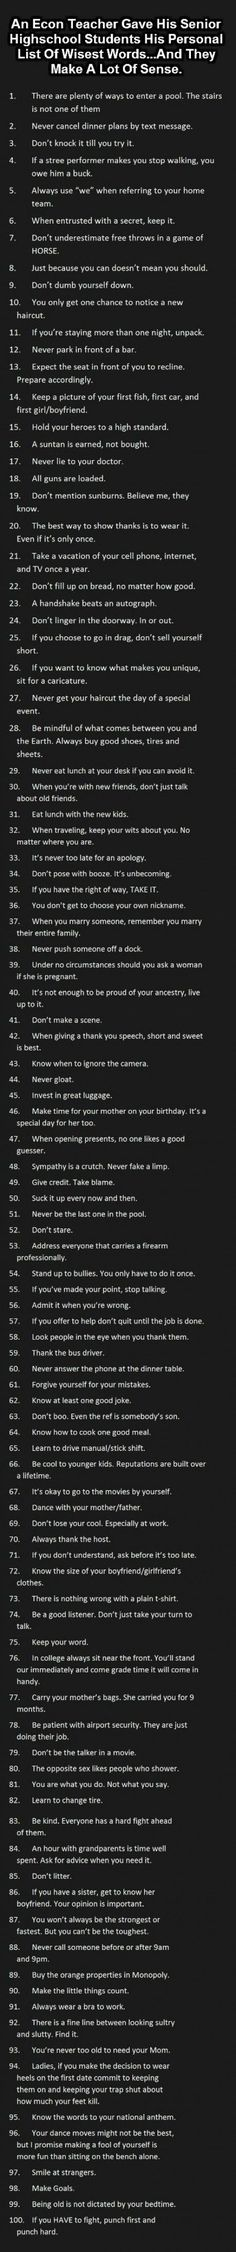 Perfect prompt -- expand each rule into a paragraph describing more general life advice and explaining why it's important. An Econ Teacher Gave His Senior High School Students His Personal List Of Wisest Words